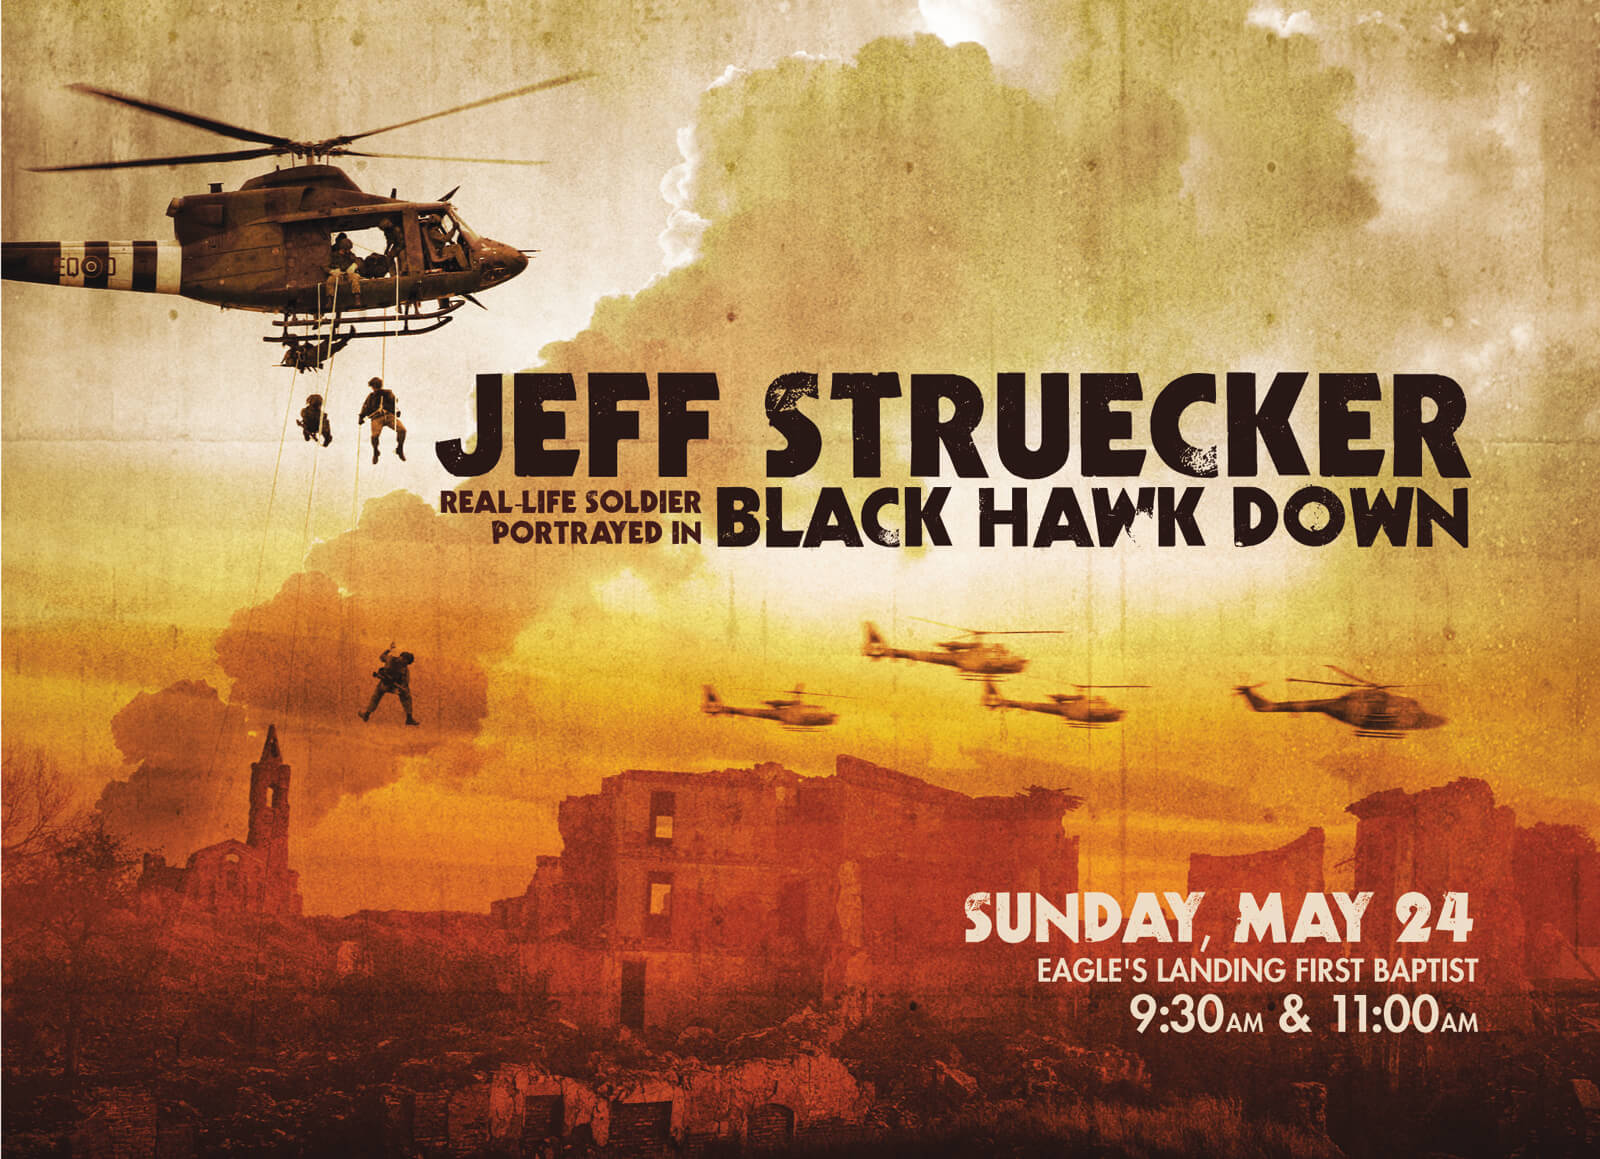 Jeff Struecker Black Hawk Down